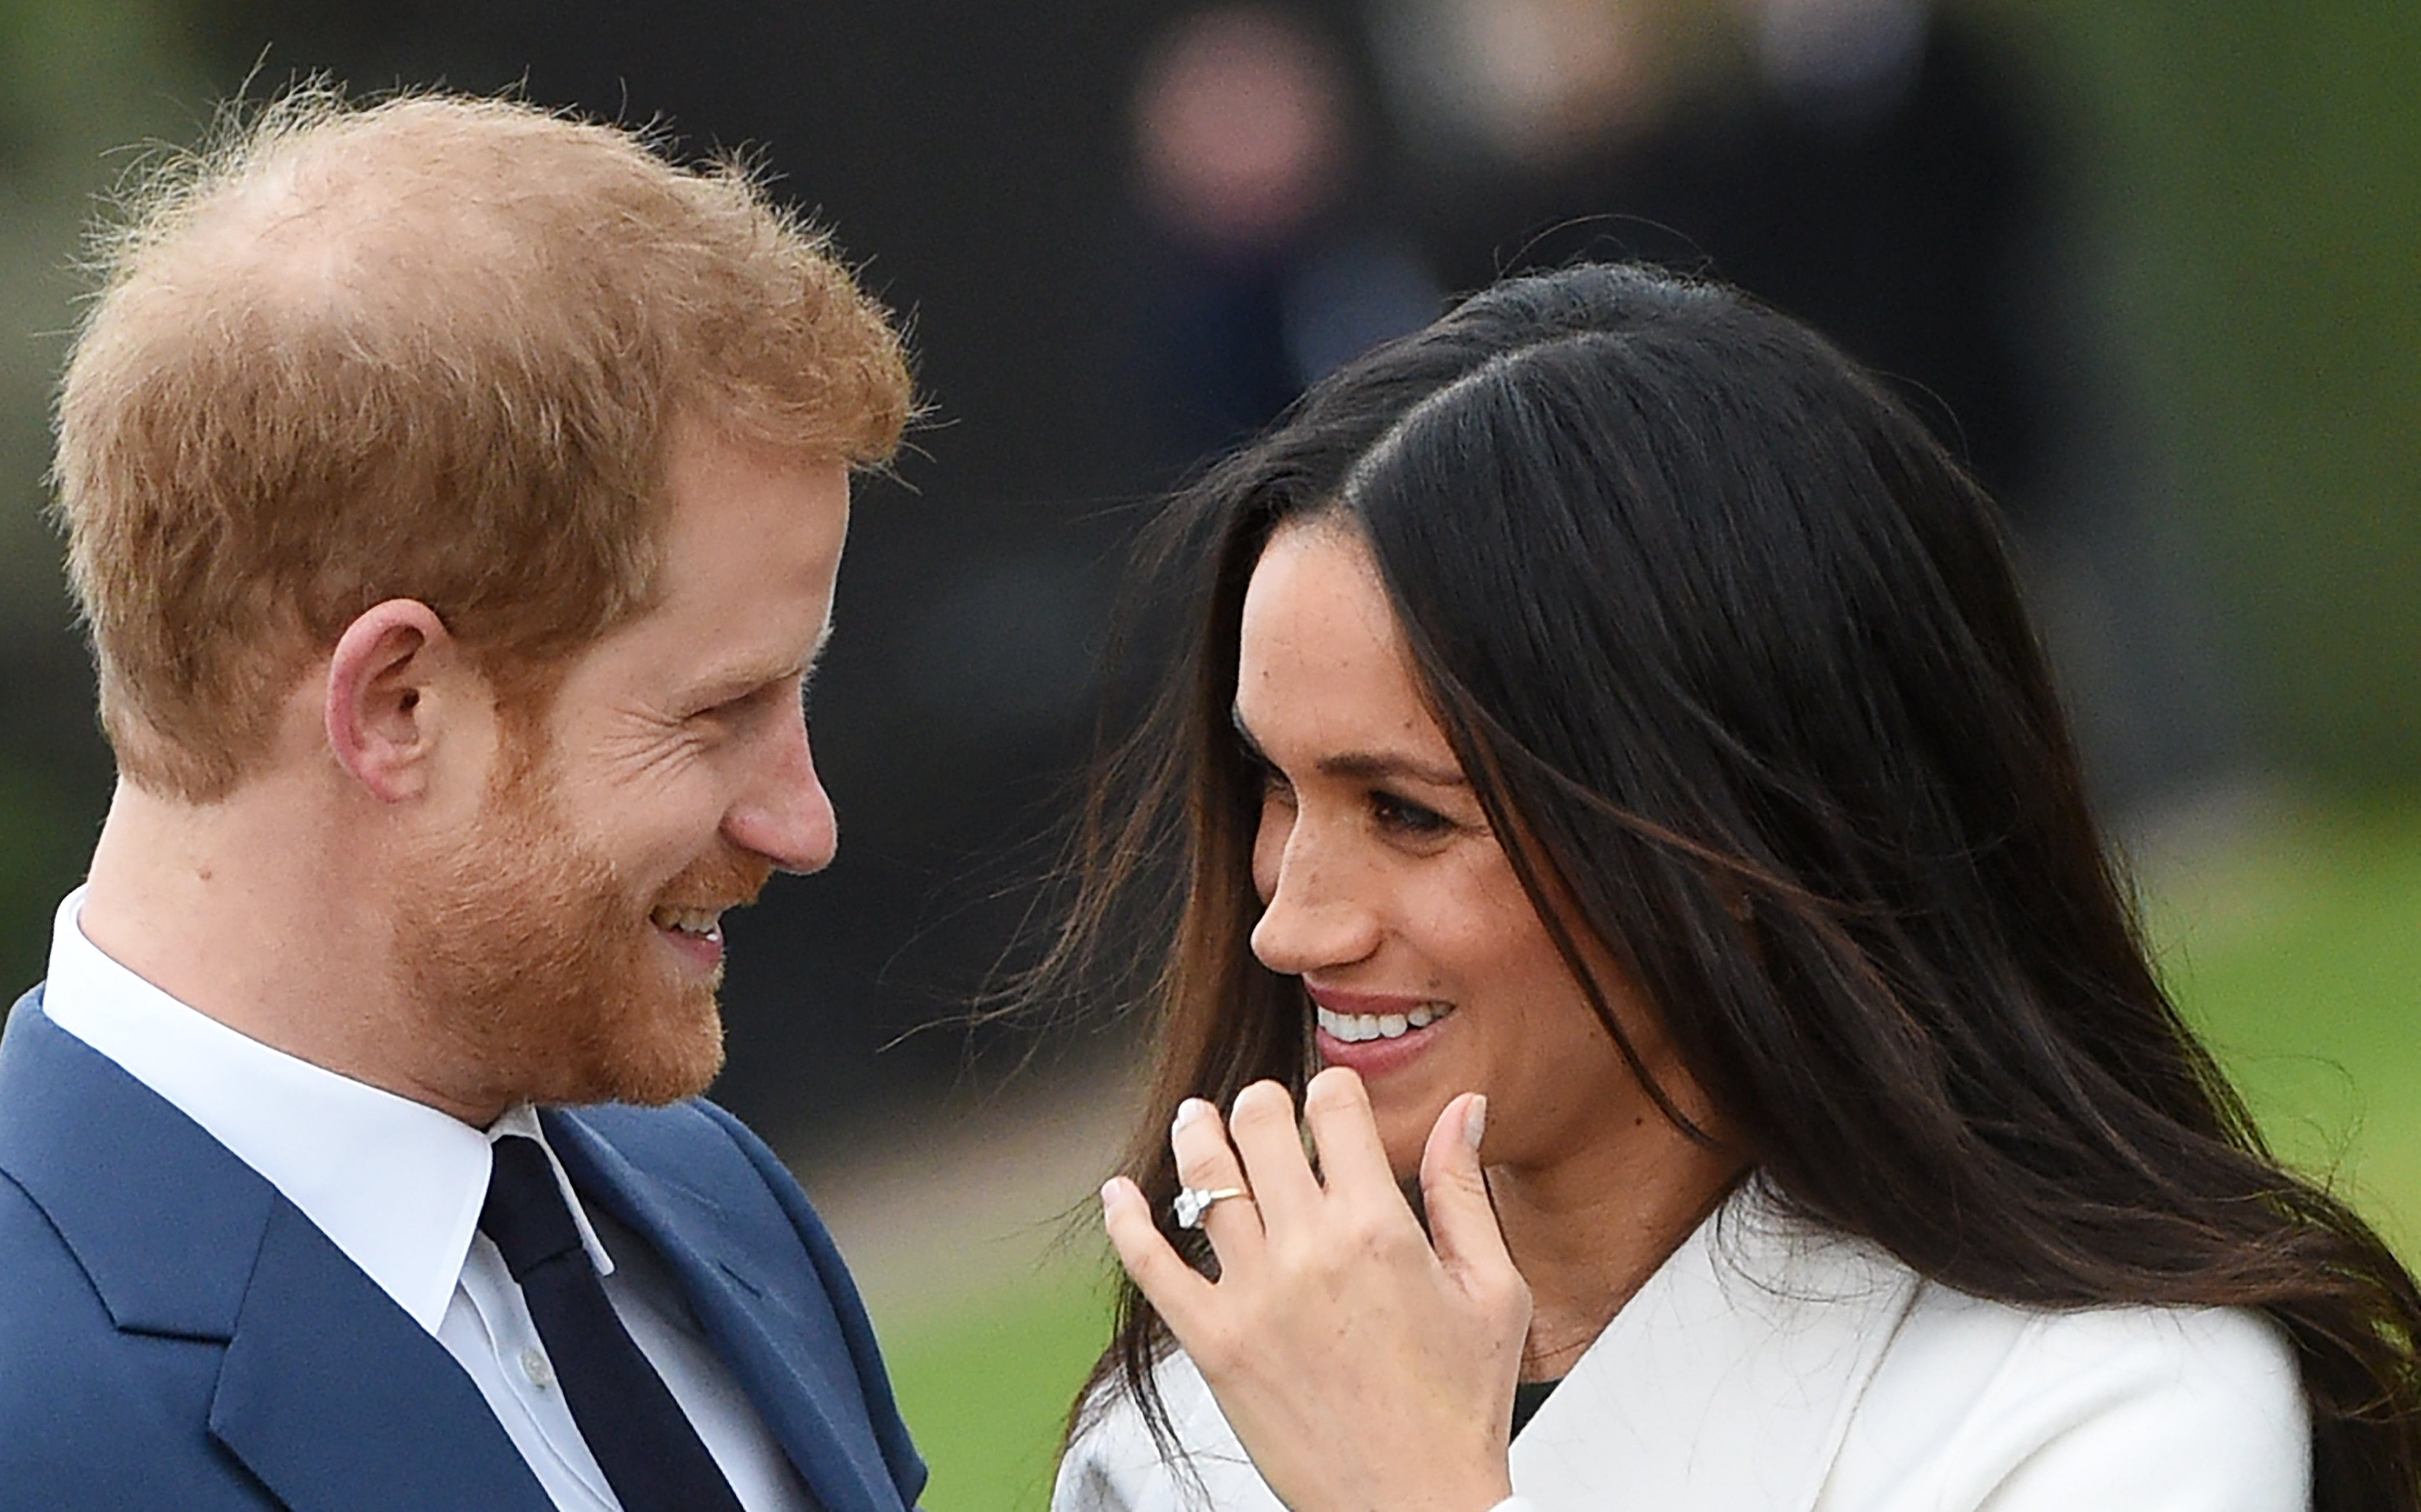 Here's how to watch the royal wedding, plus memories of a Memphis visit | The Commercial Appeal